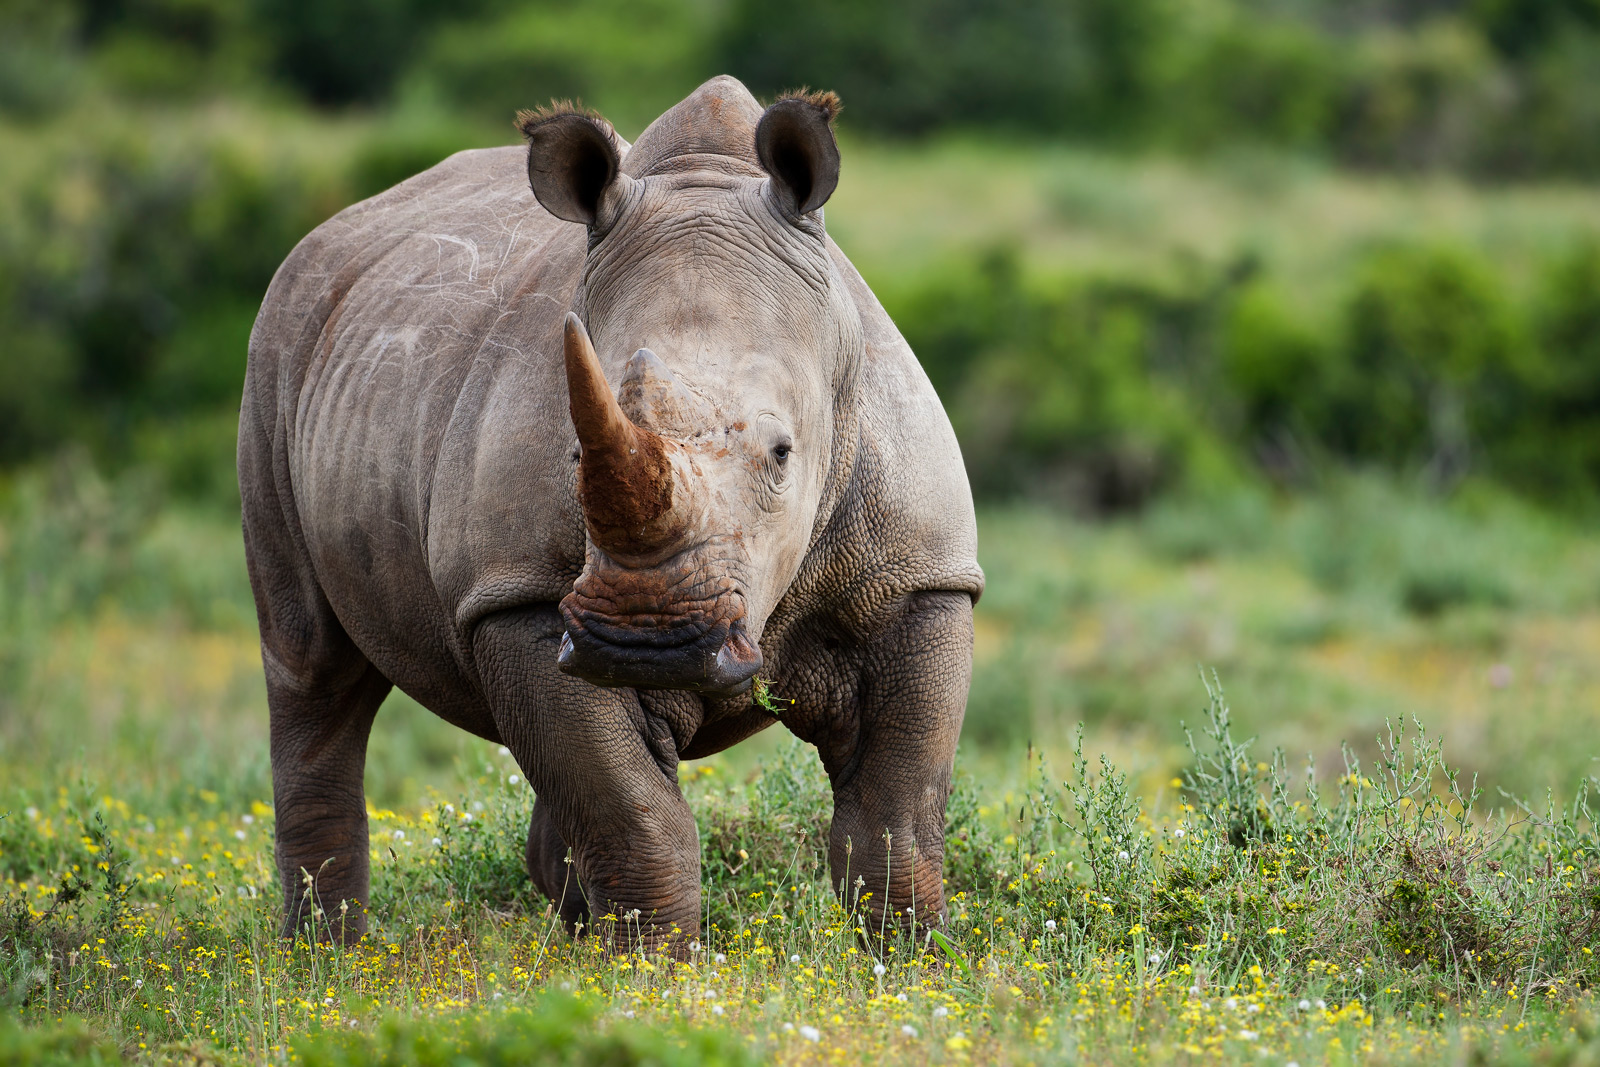 This beautiful image was taken by David Kettles in the Kariega Game reserve in 2011. Sadly this White Rhino bull is no longer with us and was killed in a poaching attack on the 2nd March 2012 for his horn.